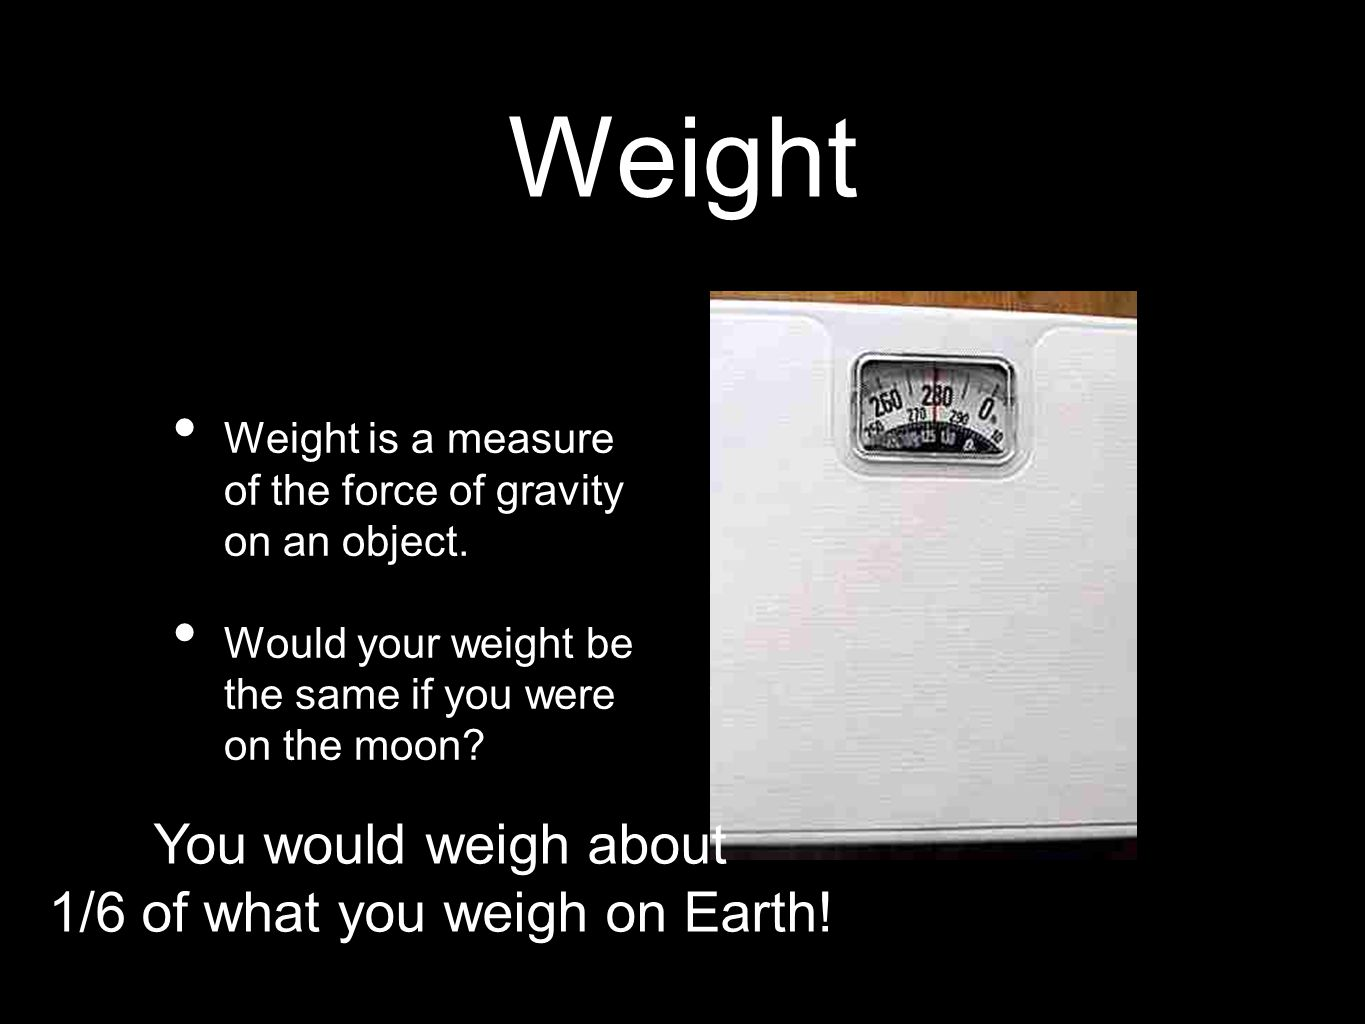 1/6 of what you weigh on Earth!